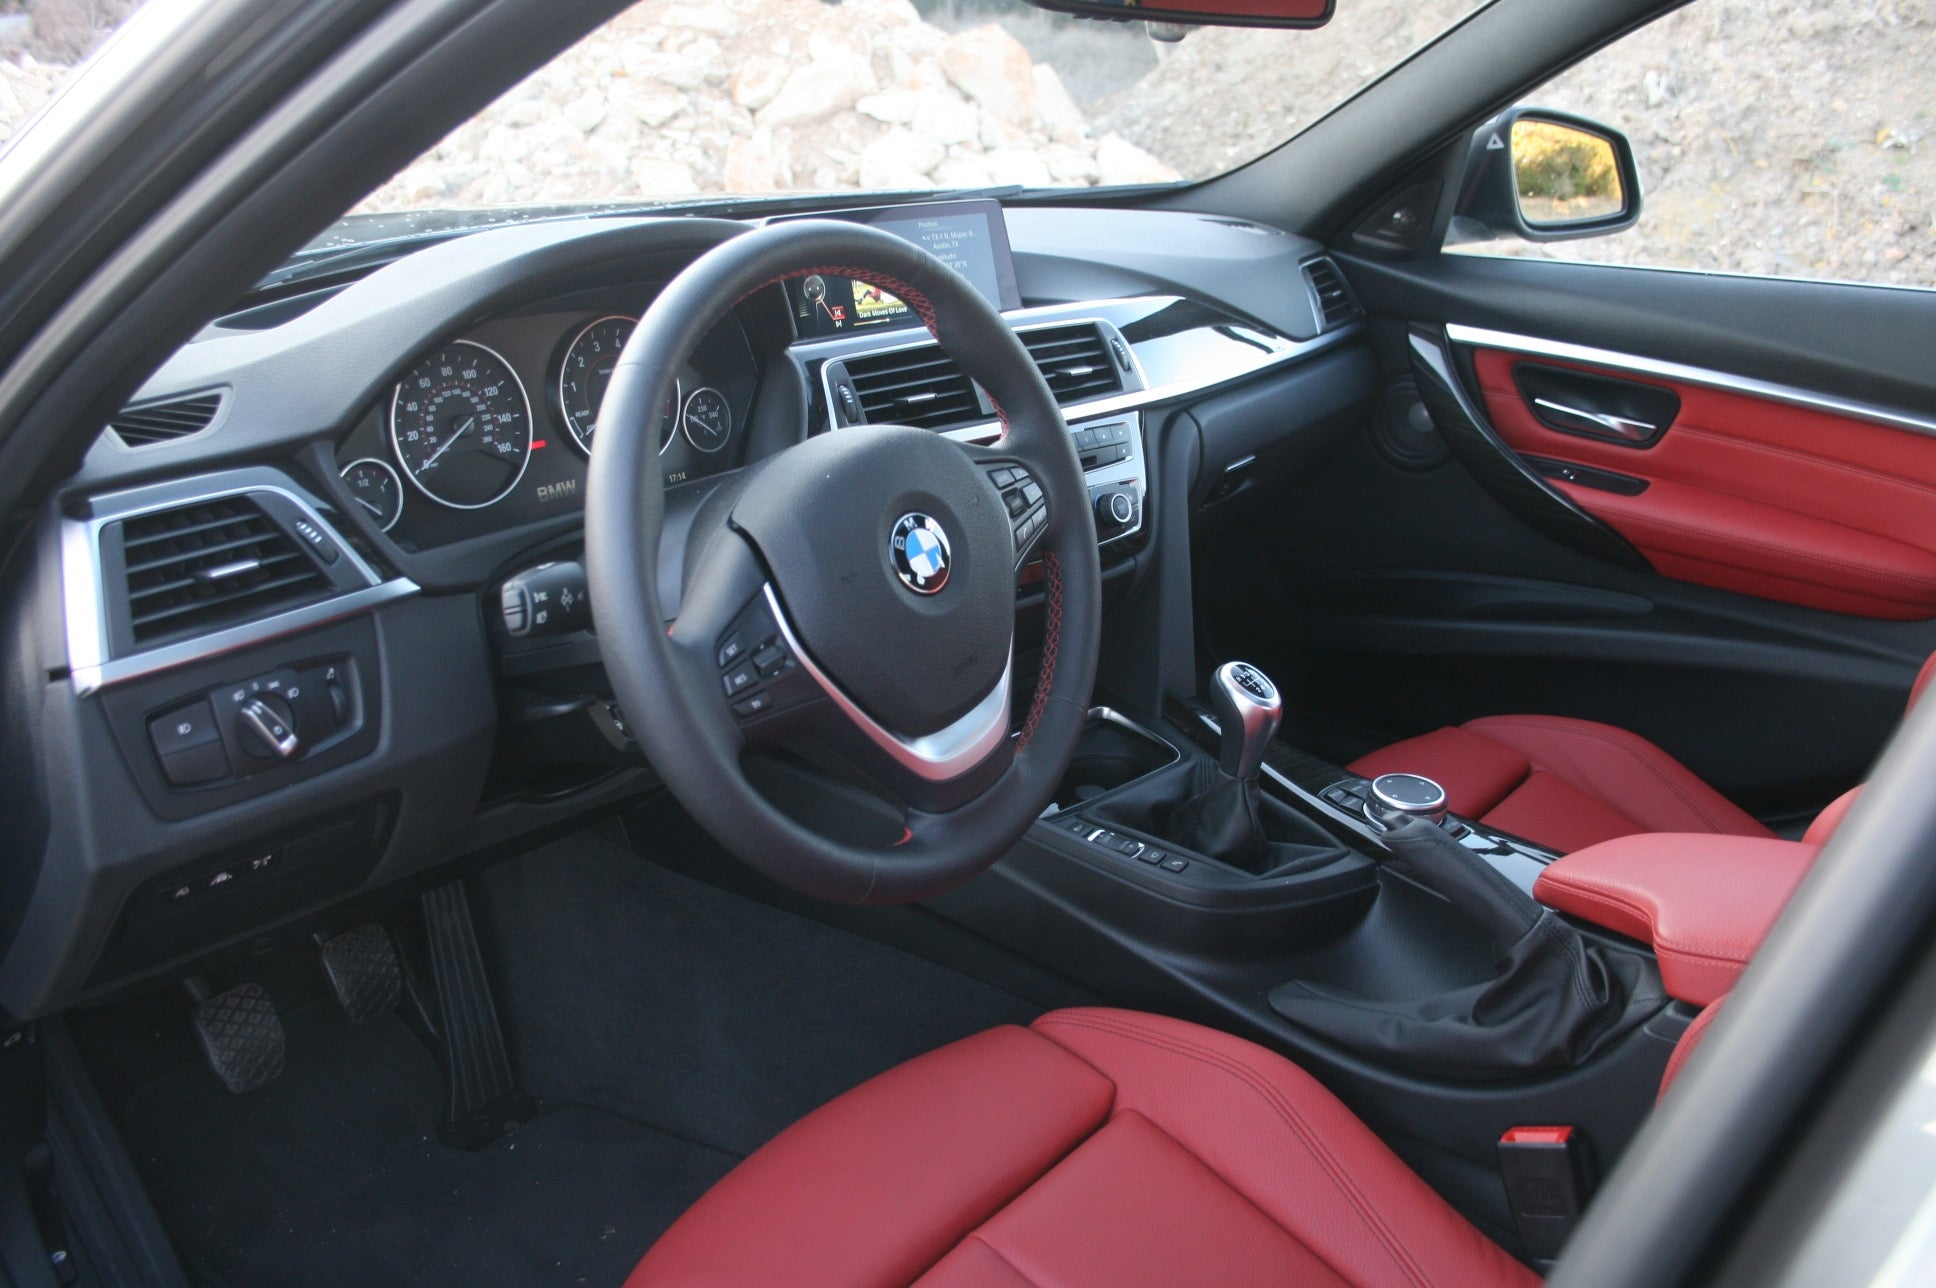 the best thing about the bmw 340i is that it comes with three pedals rh jalopnik com 2005 bmw 3 series manual transmission bmw 3 series touring manual transmission